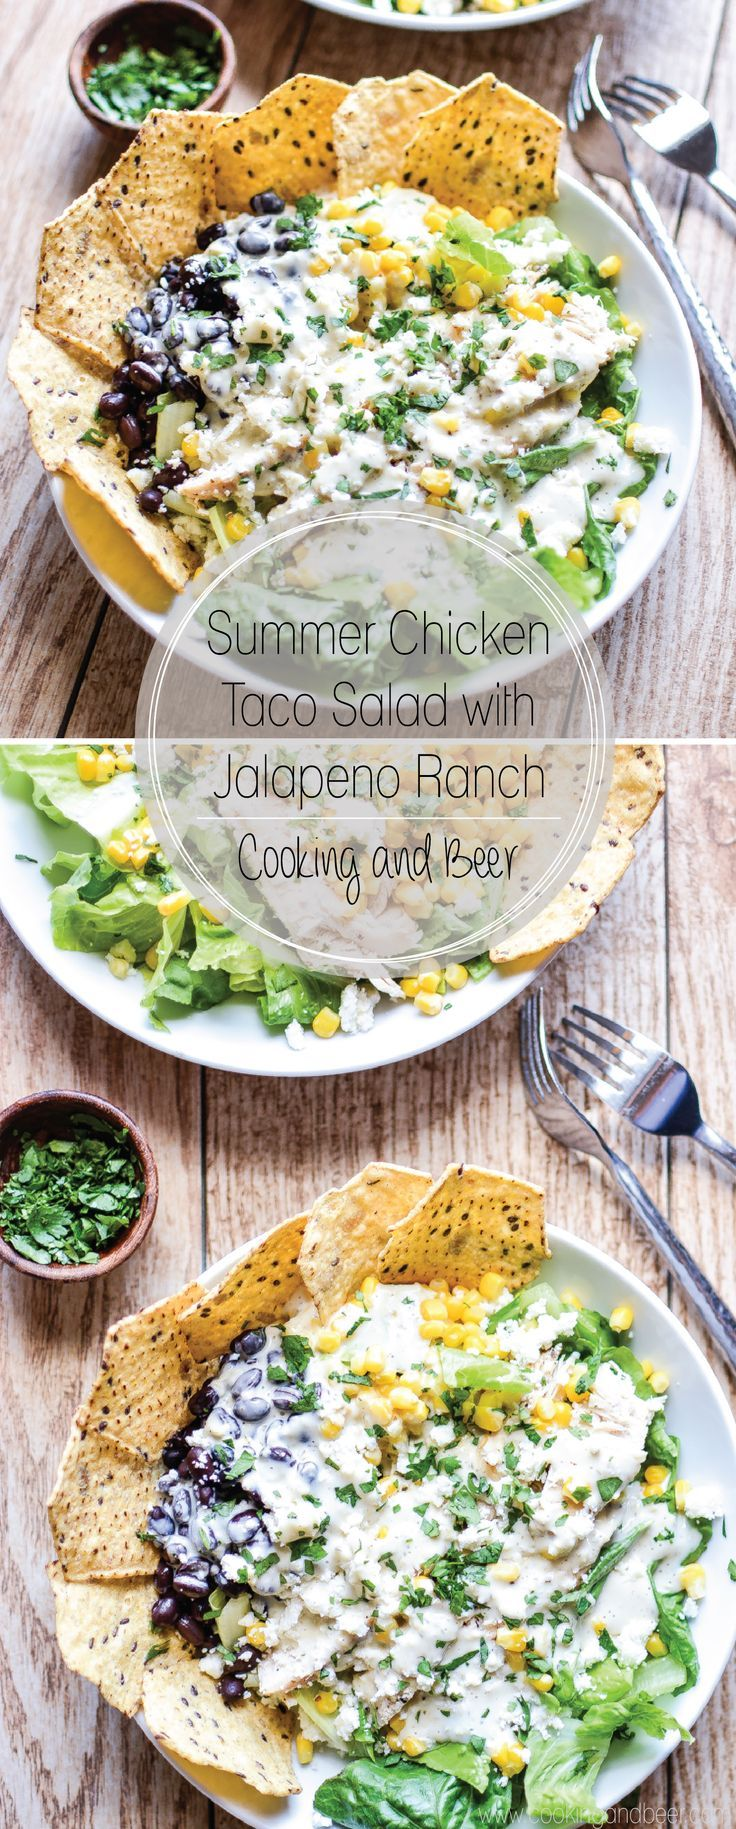 Summer Chicken Taco Salad with Jalapeno Ranch: a refreshing and hearty salad featuring Food Should Taste Good tortilla chips! | www.cookingandbeer.com